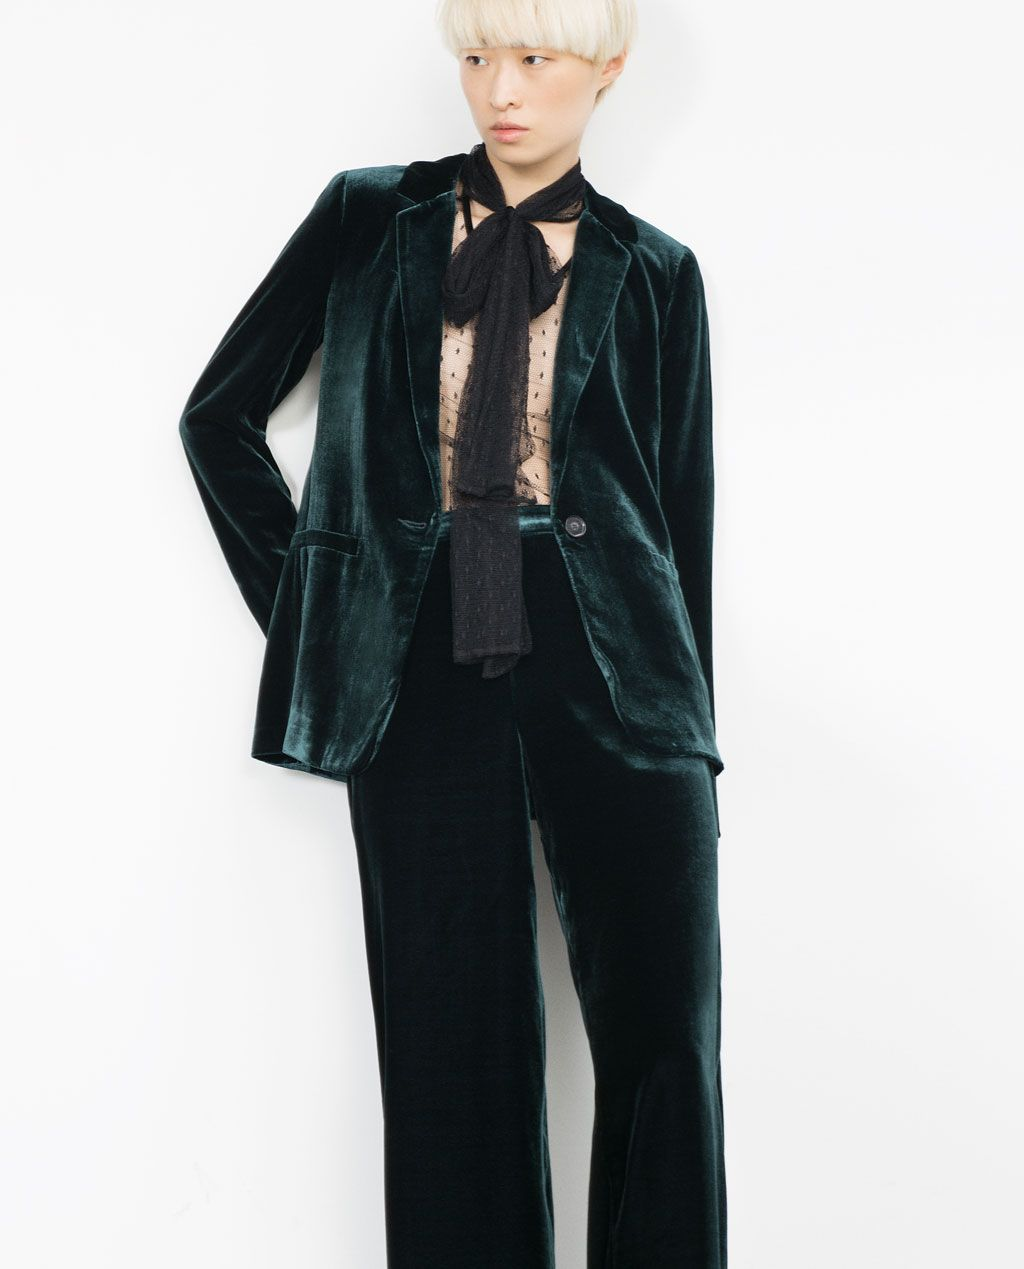 Zara Woman Green Velvet Studio Jacket With Images Green Velvet Jacket Blazer Jackets For Women